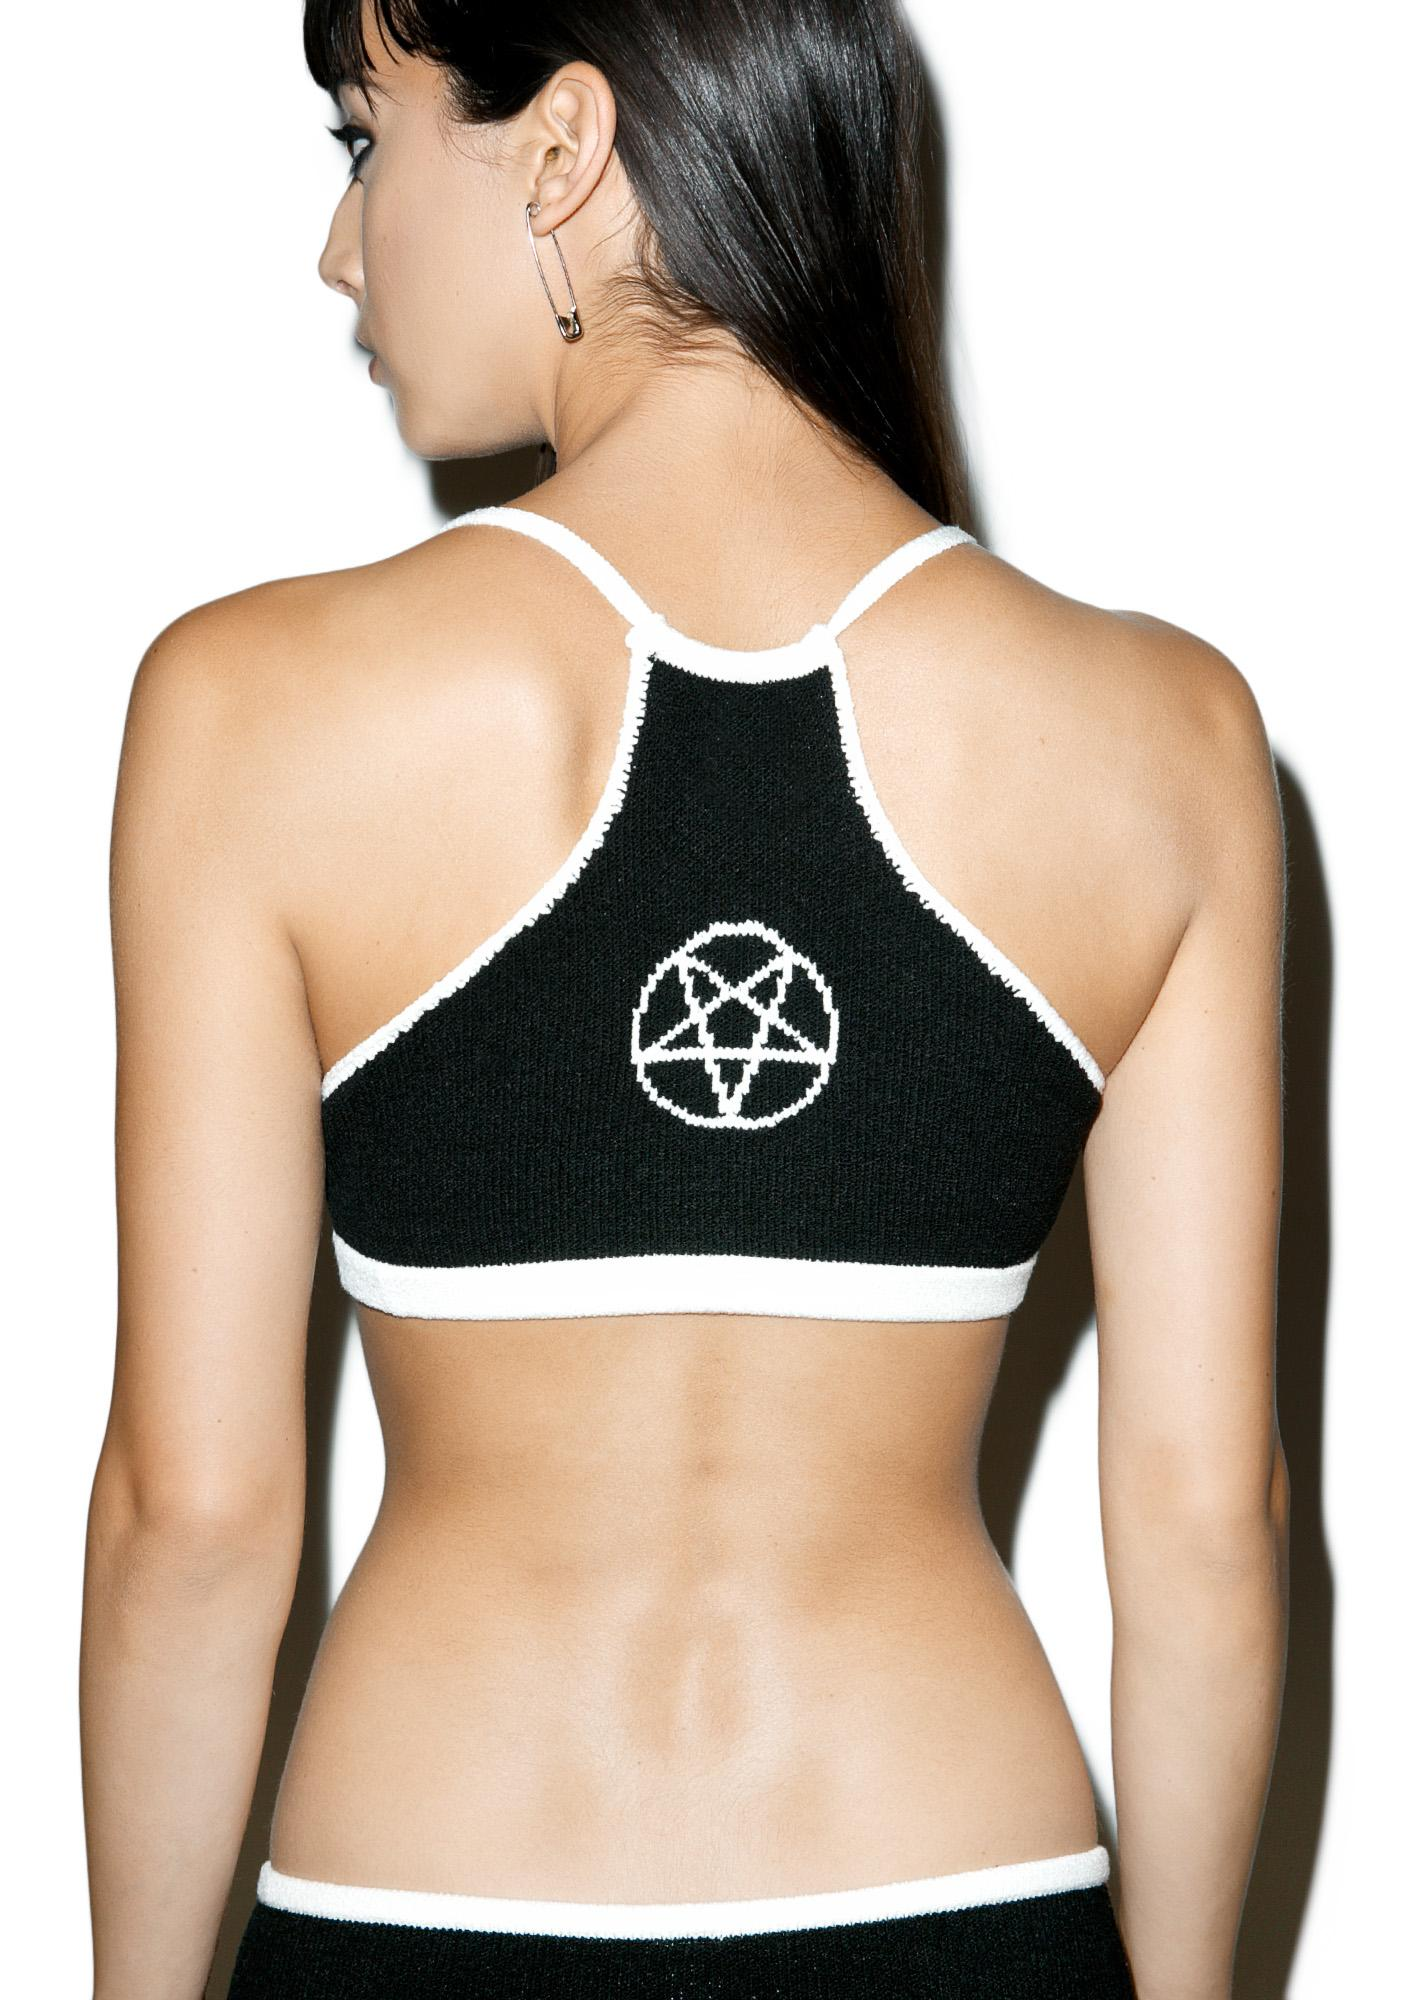 Knitty Kitty Pentagram Knit Bralette